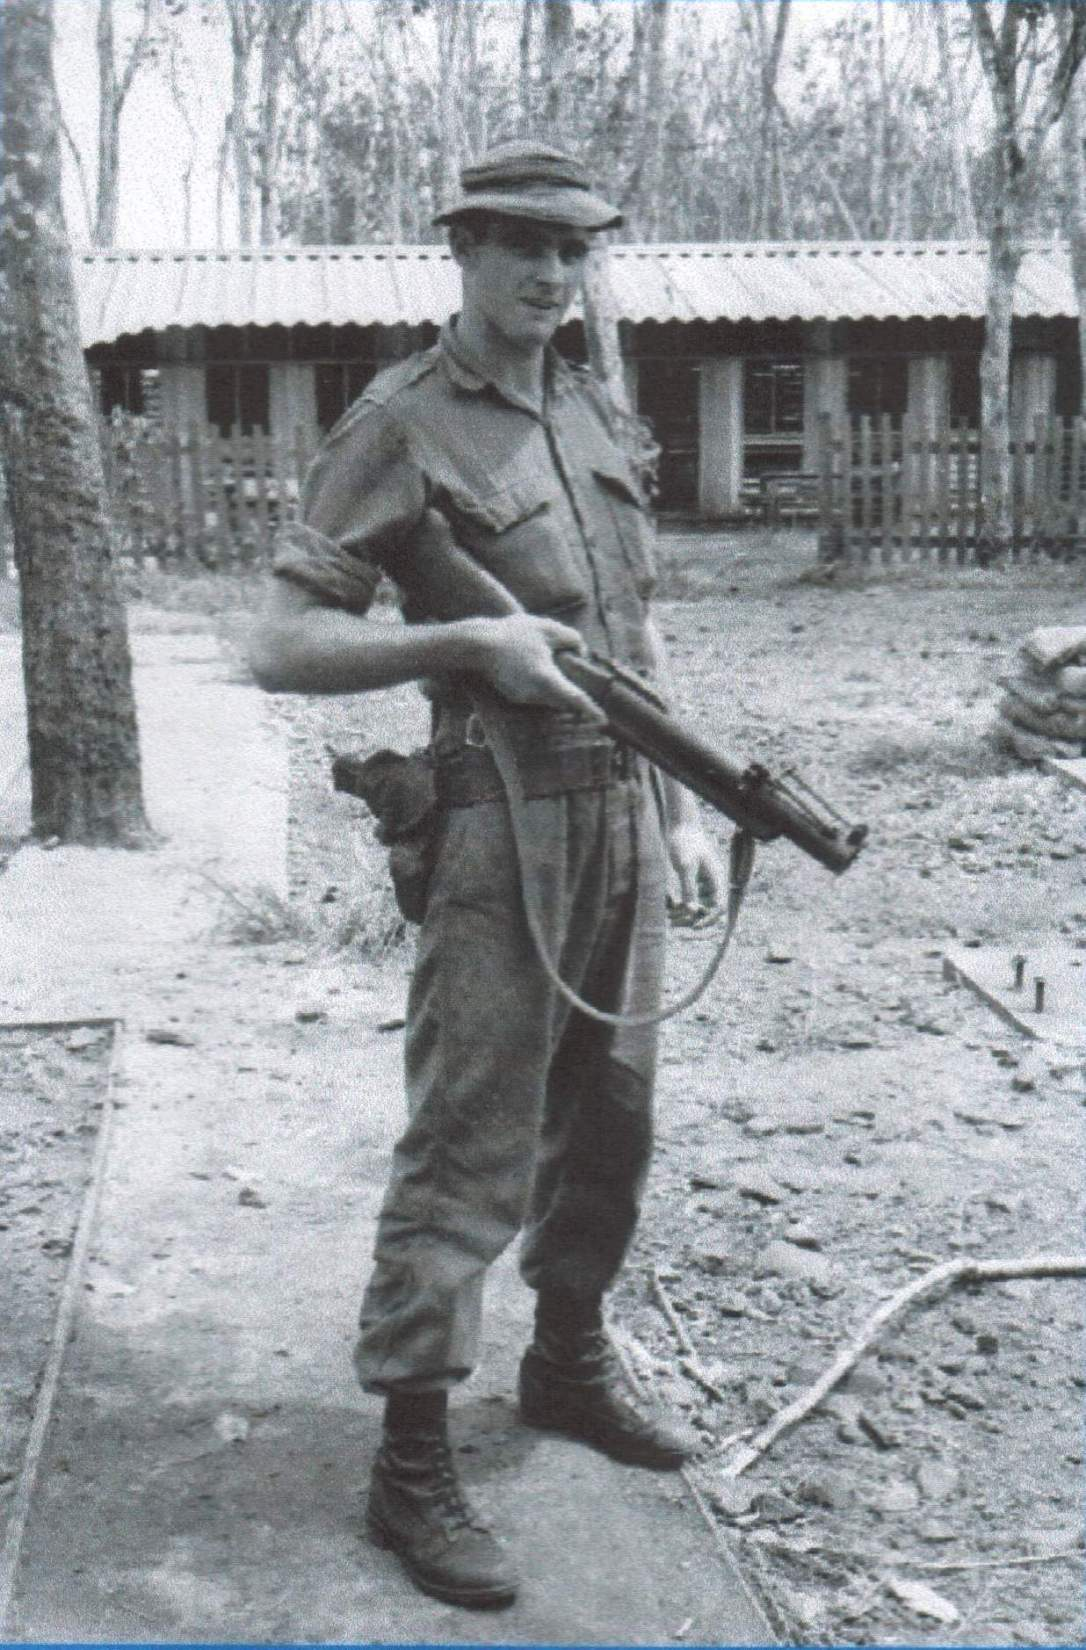 7-Dog-handler 'Slim' Symington with an M79.